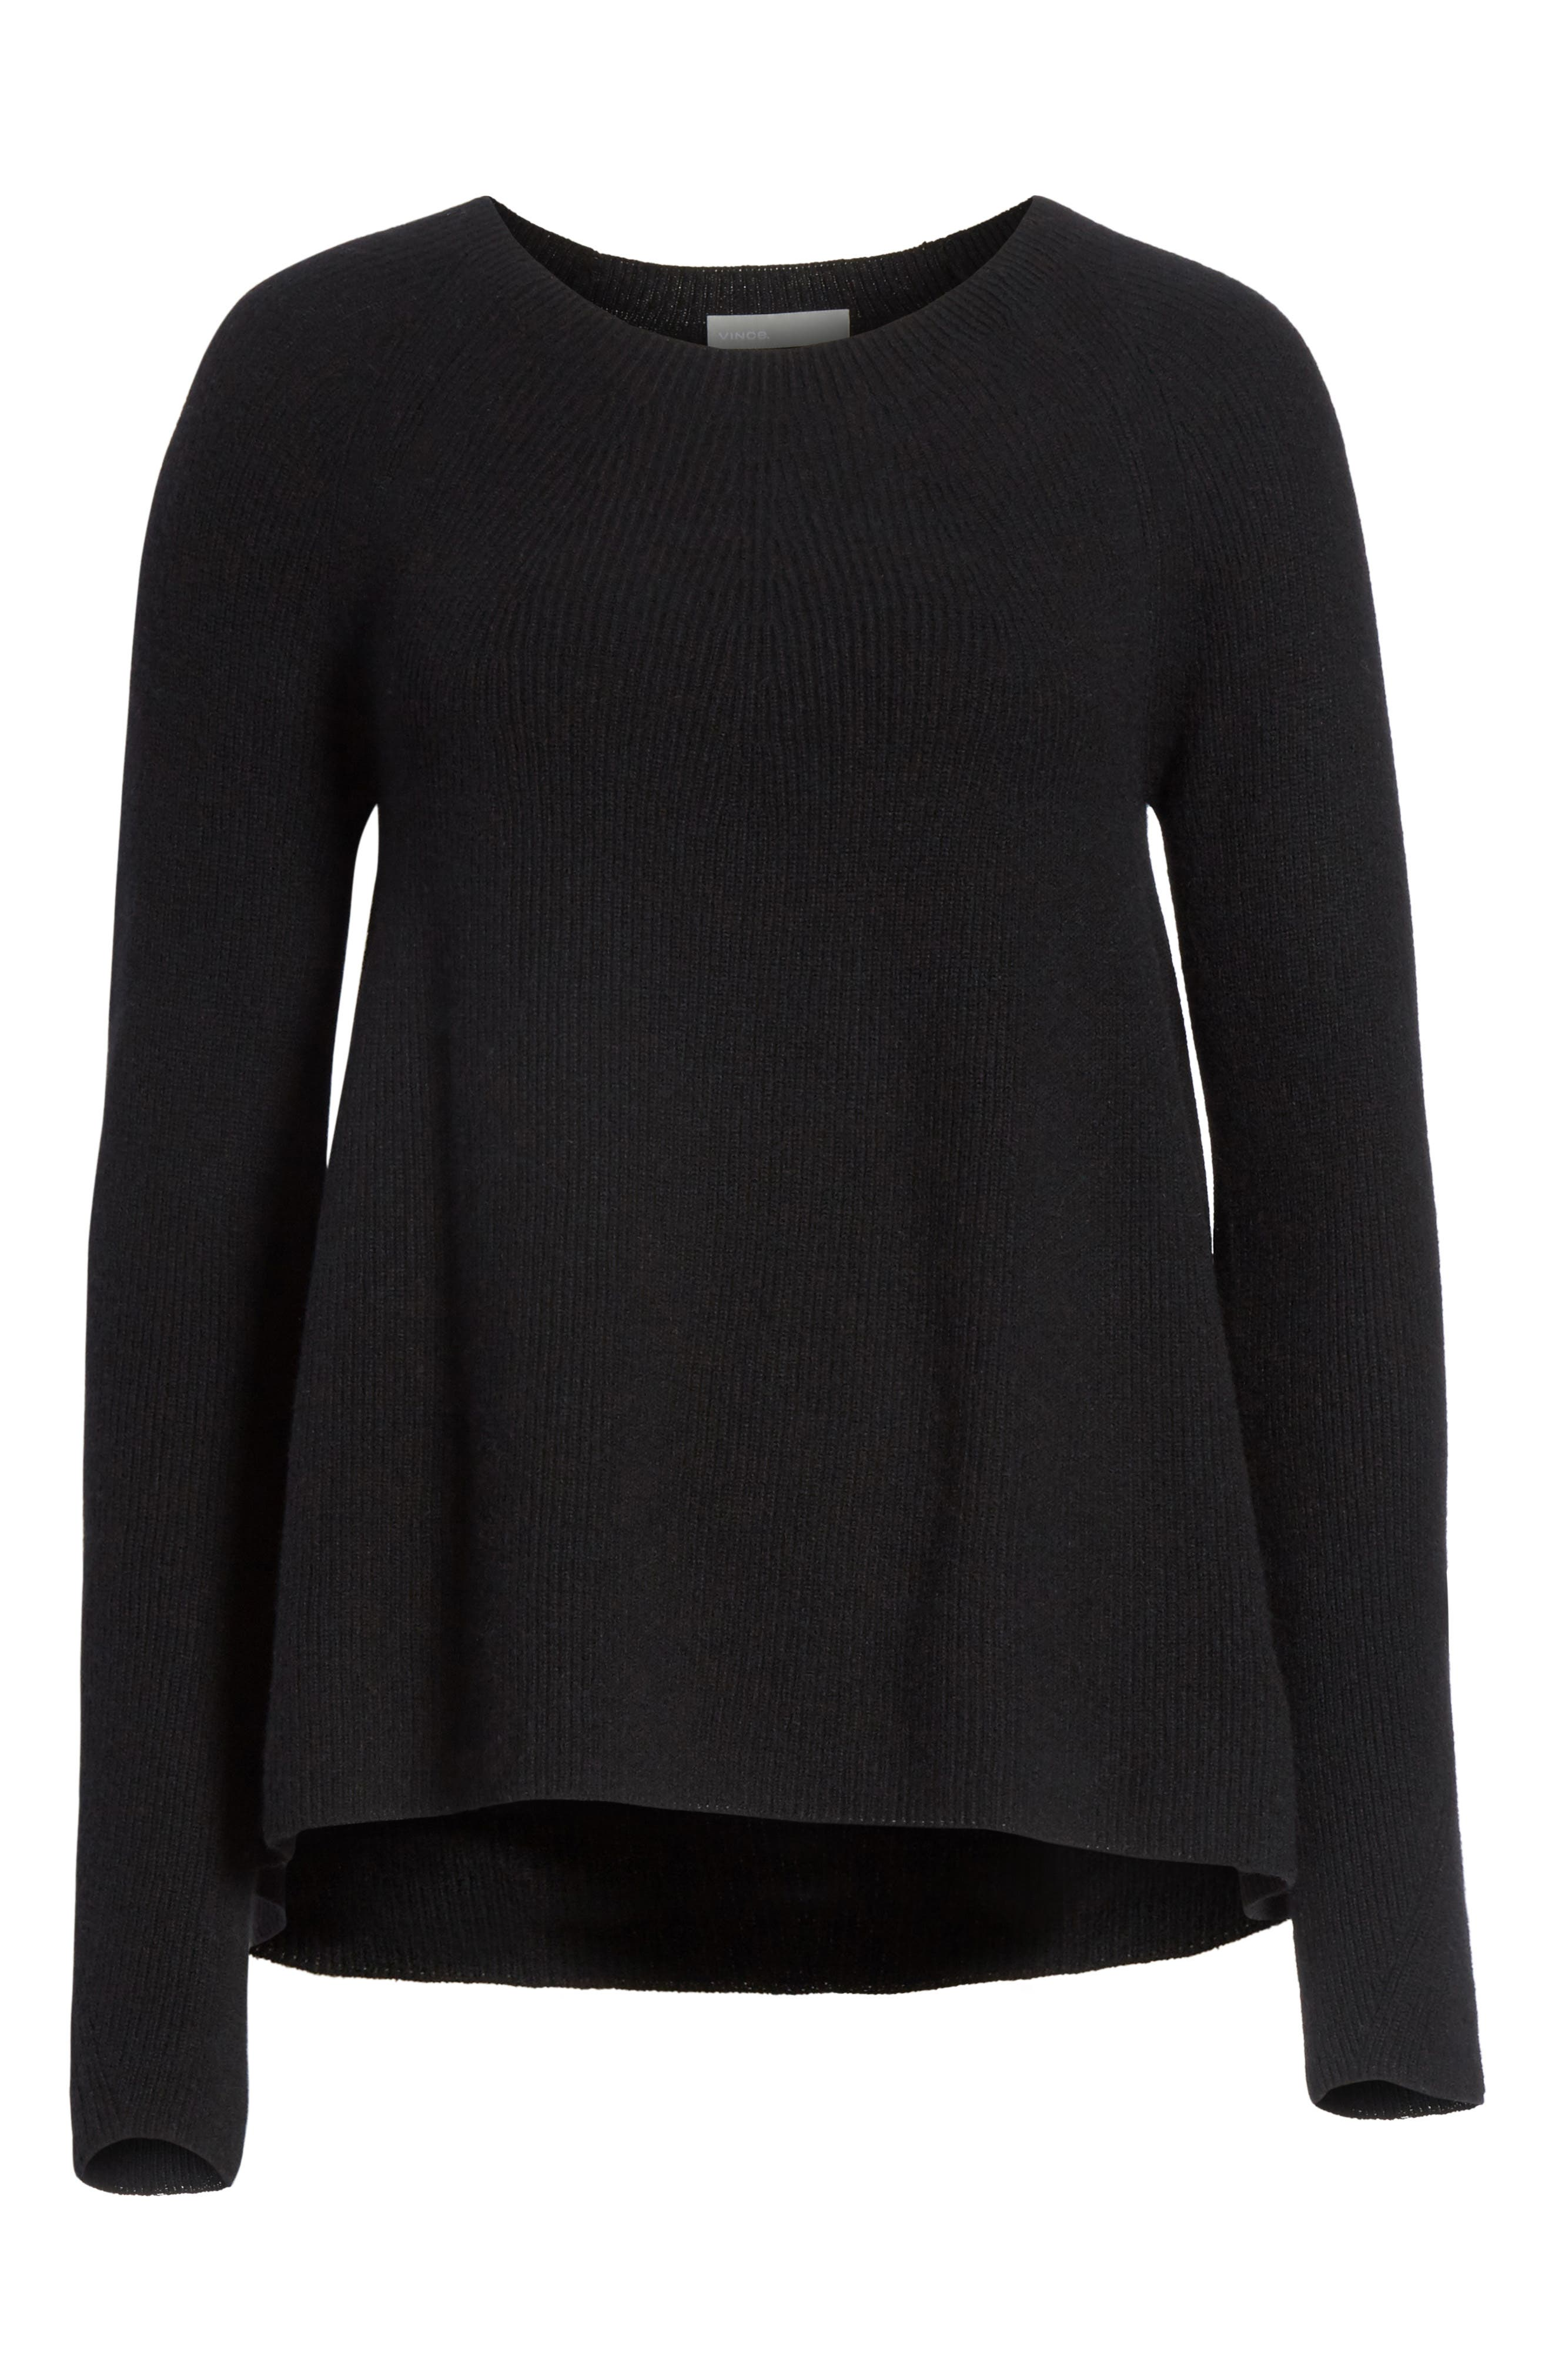 Ribbed Cashmere Sweater,                             Alternate thumbnail 6, color,                             001